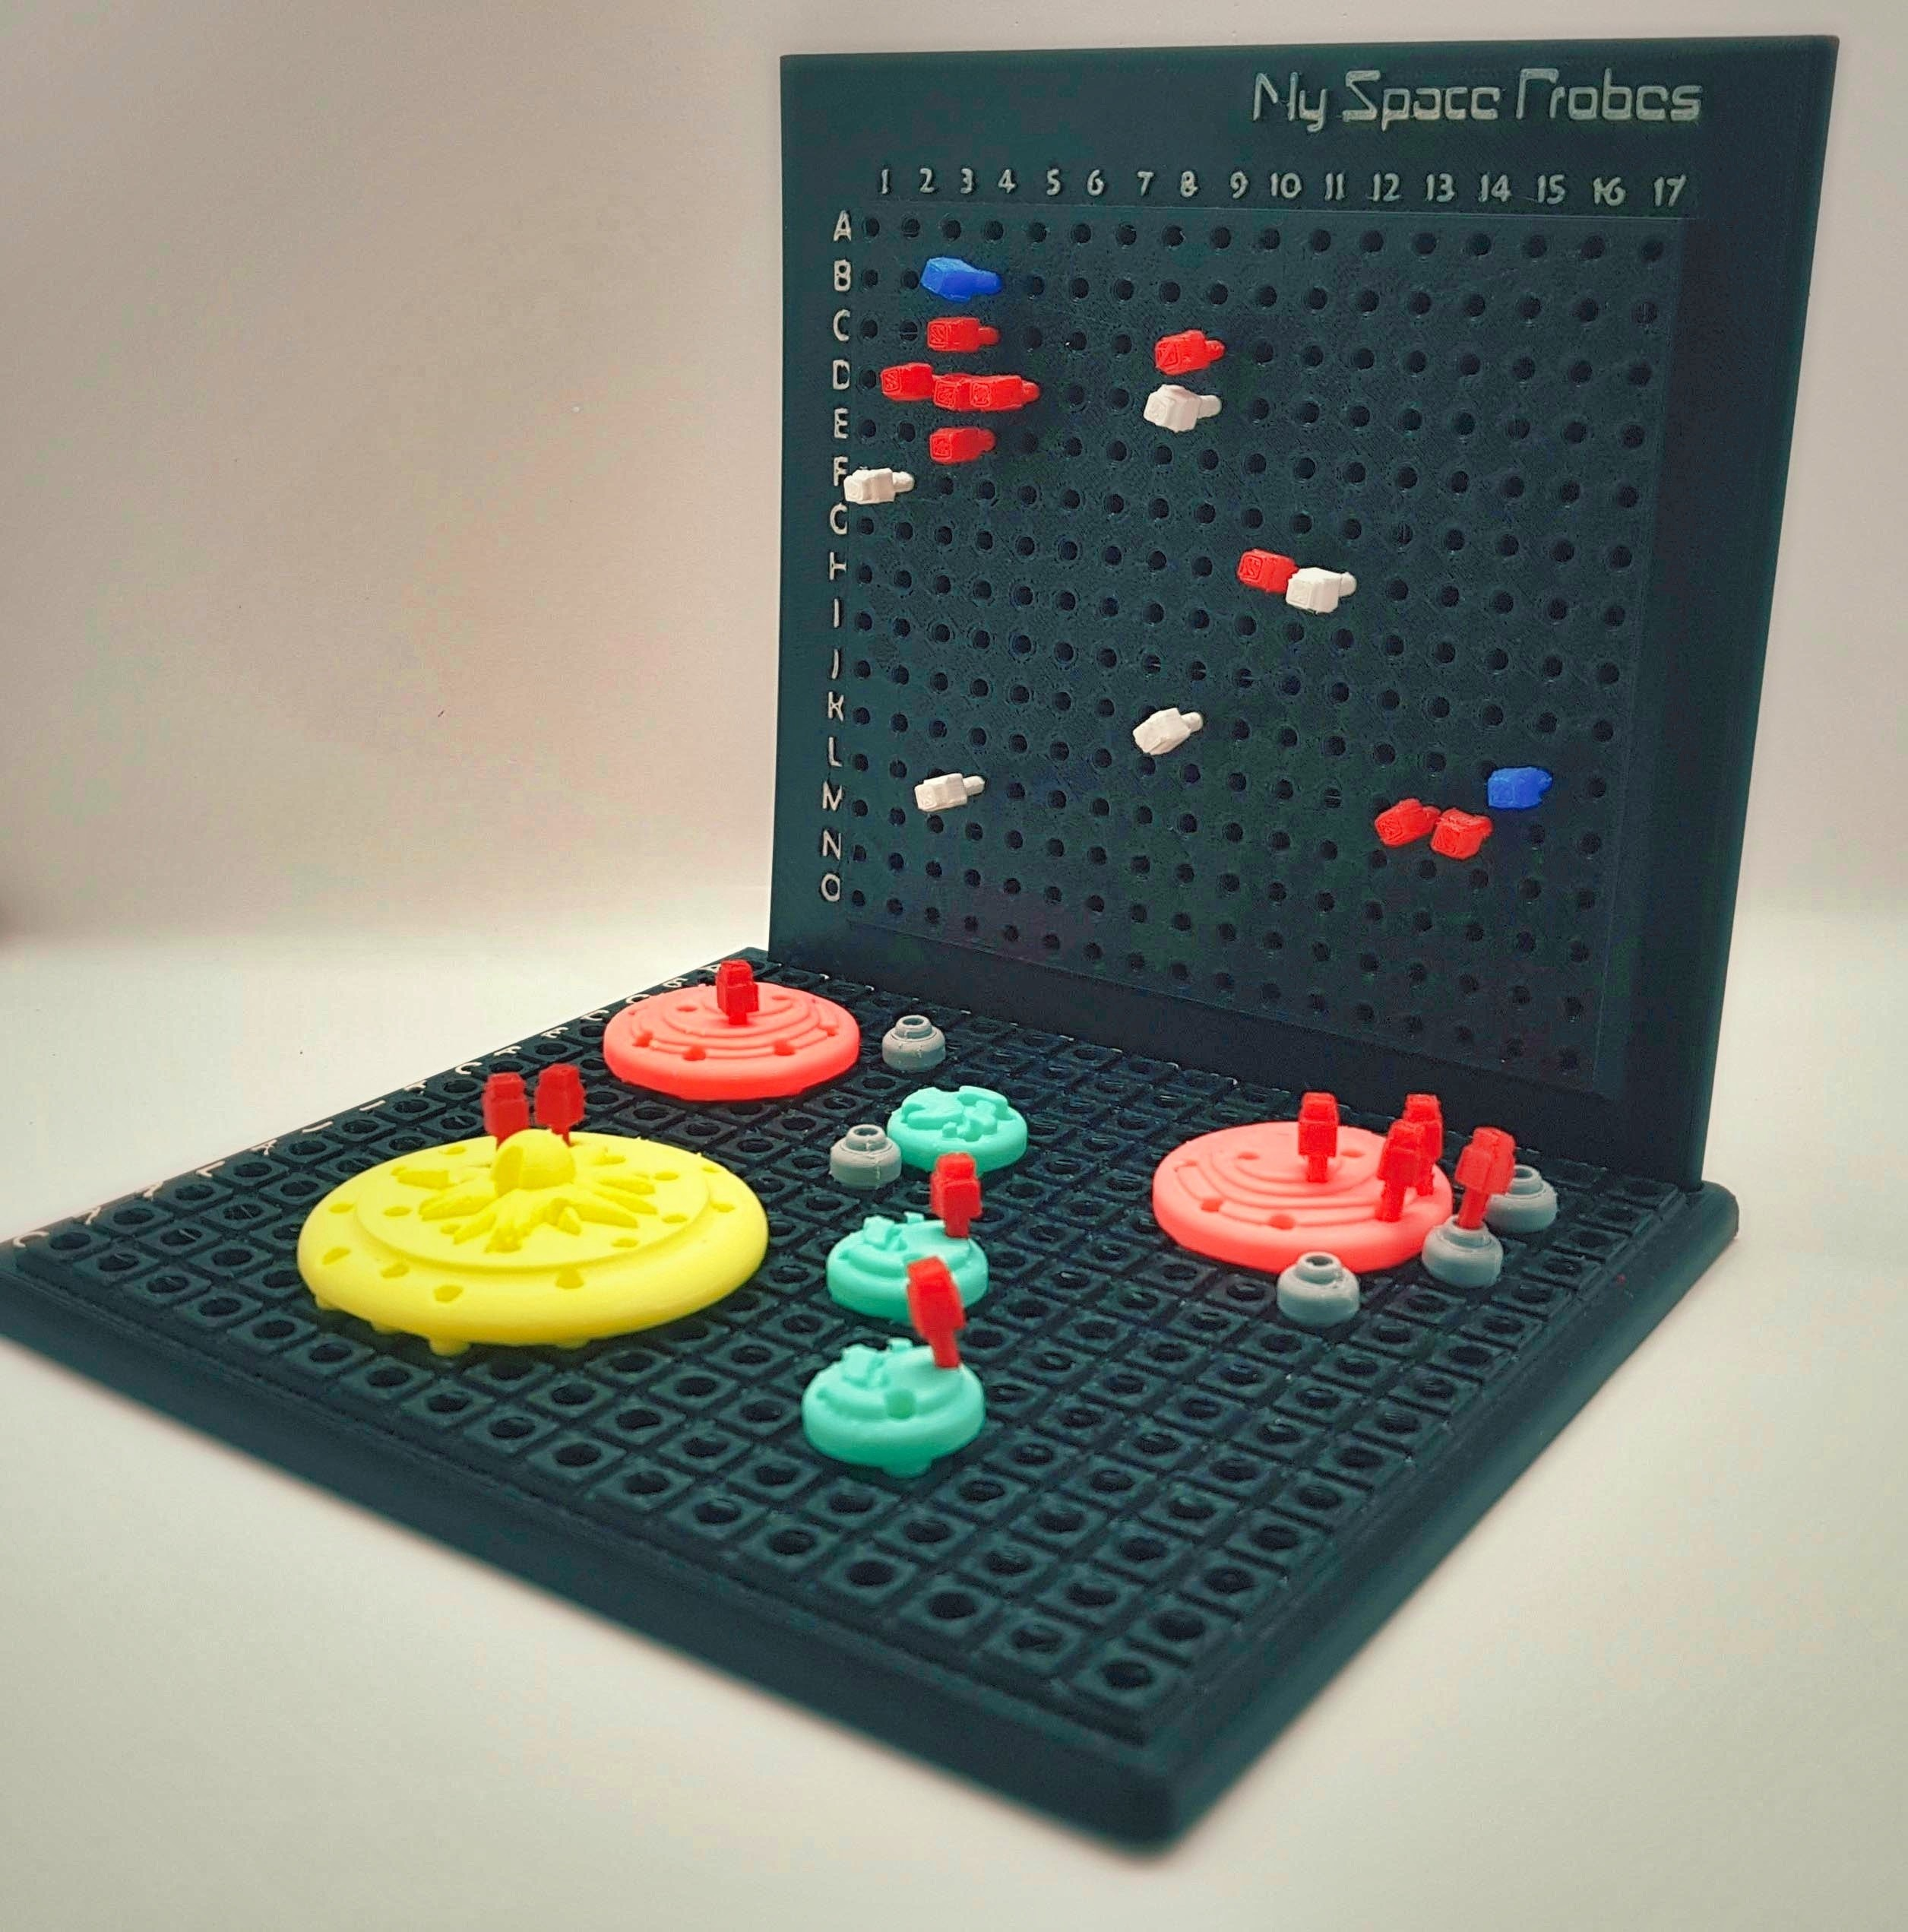 Find_My_Planets_1a_OK.jpg Download free STL file Find My Planets - Guessing Game (Battleship style) • 3D printer object, Relicae